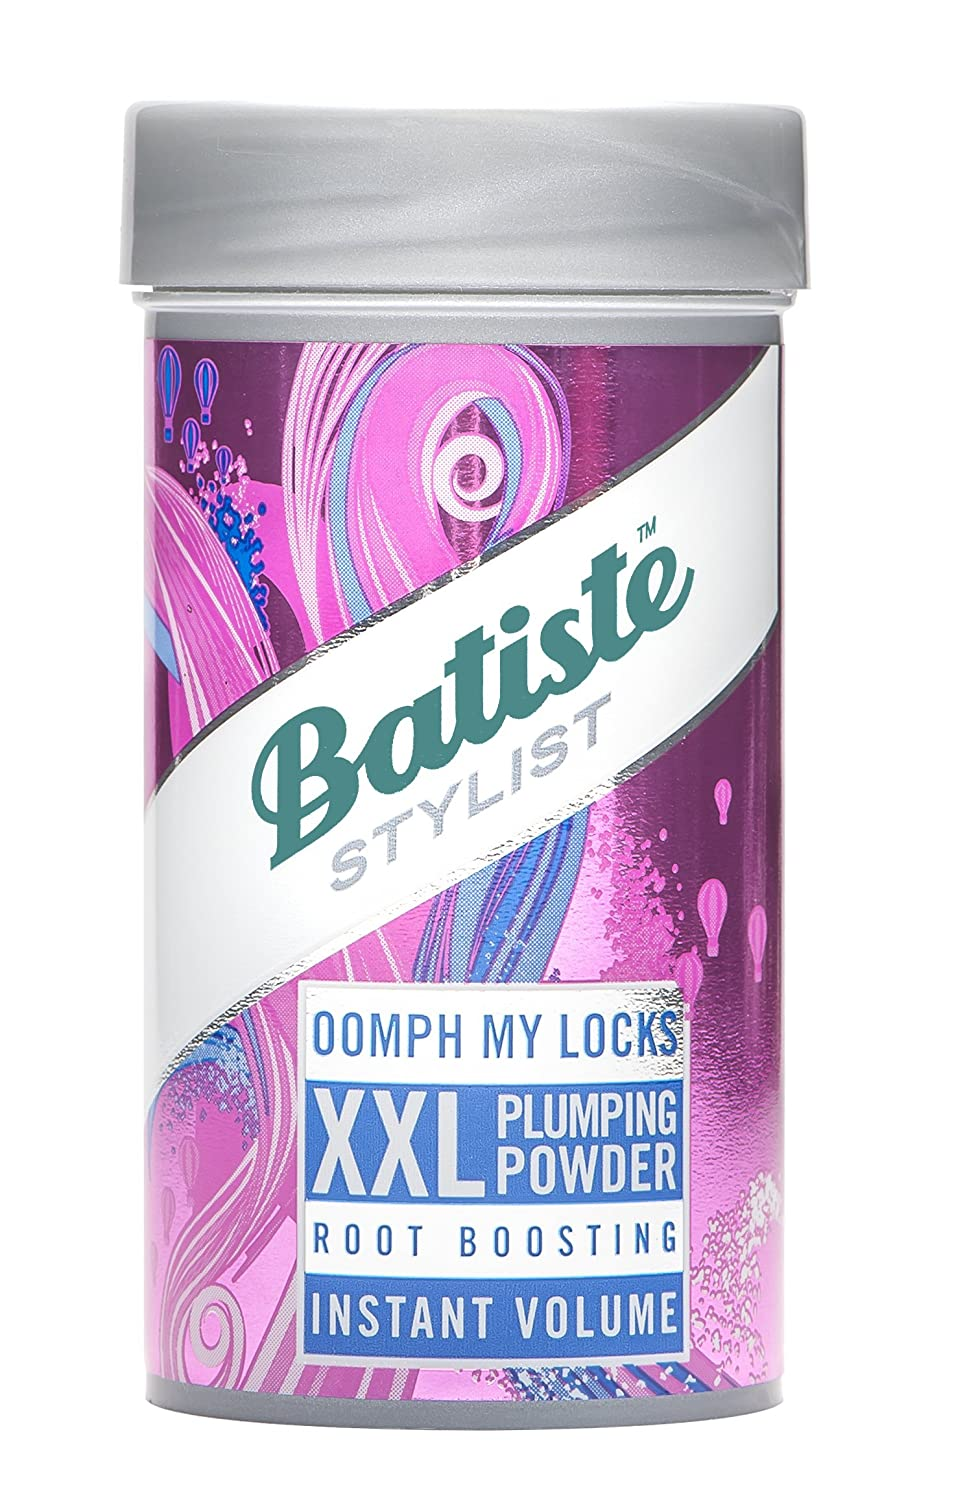 Batiste Dry Styling Plumping Powder, 5 Gram by Batiste XXL Plumping Powder